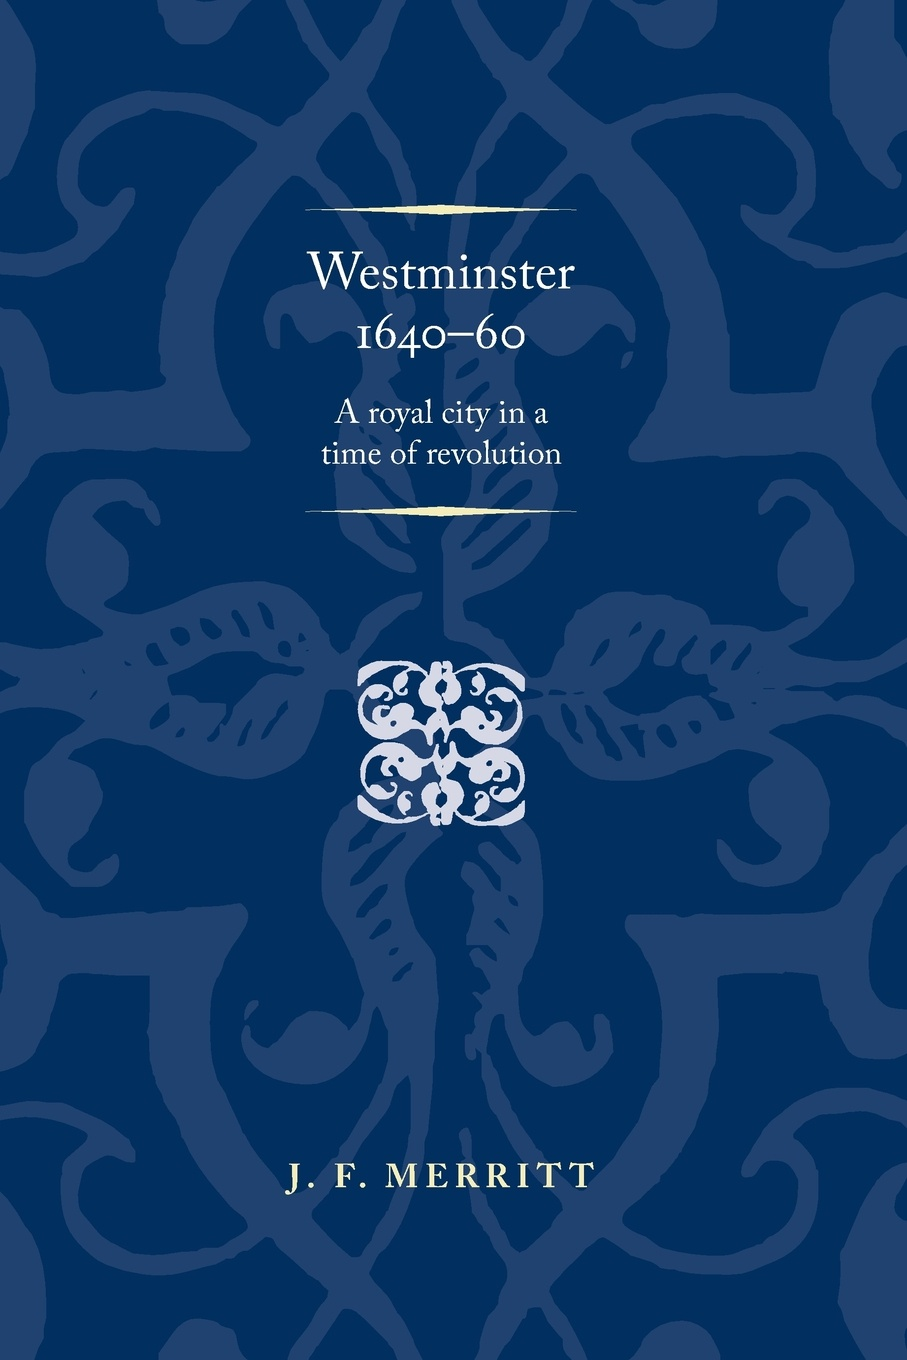 Westminster 1640-60. A Royal City in a Time of Revolution. J. F. Merritt